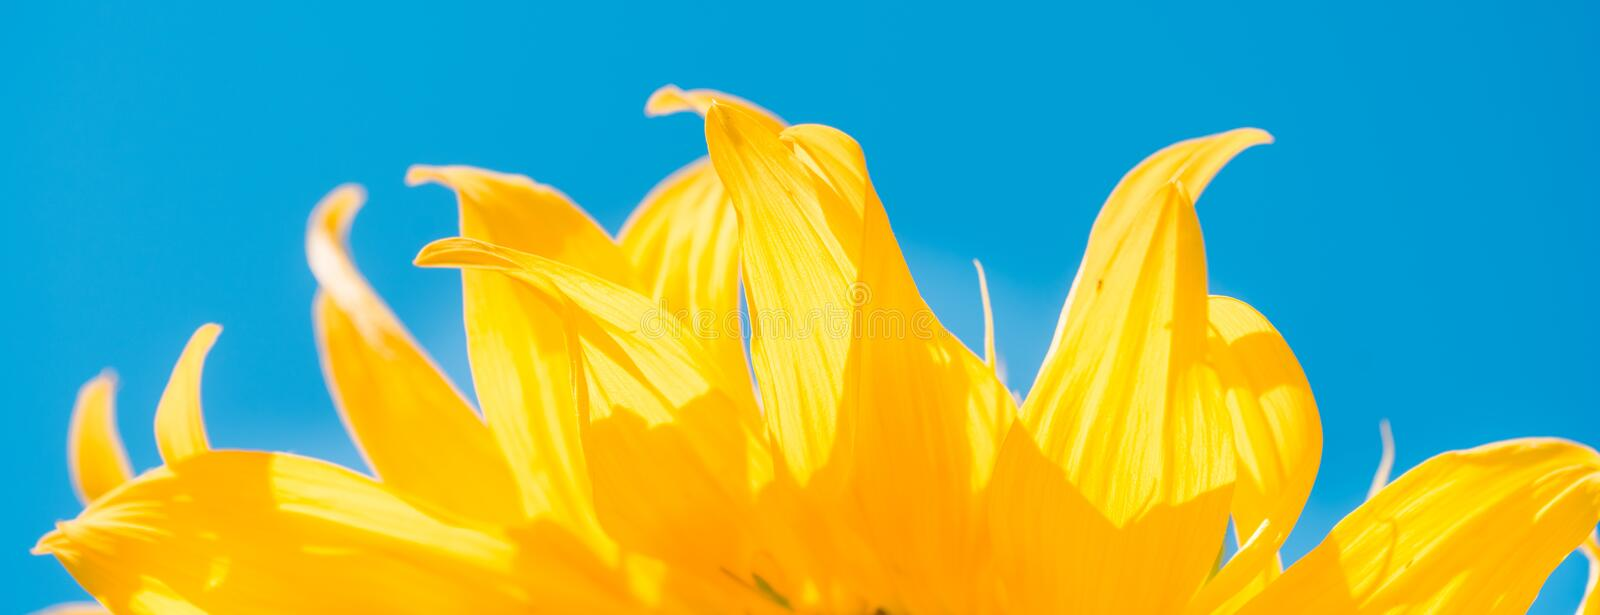 part of sunflower sun against the background of the blue sky. royalty free stock images